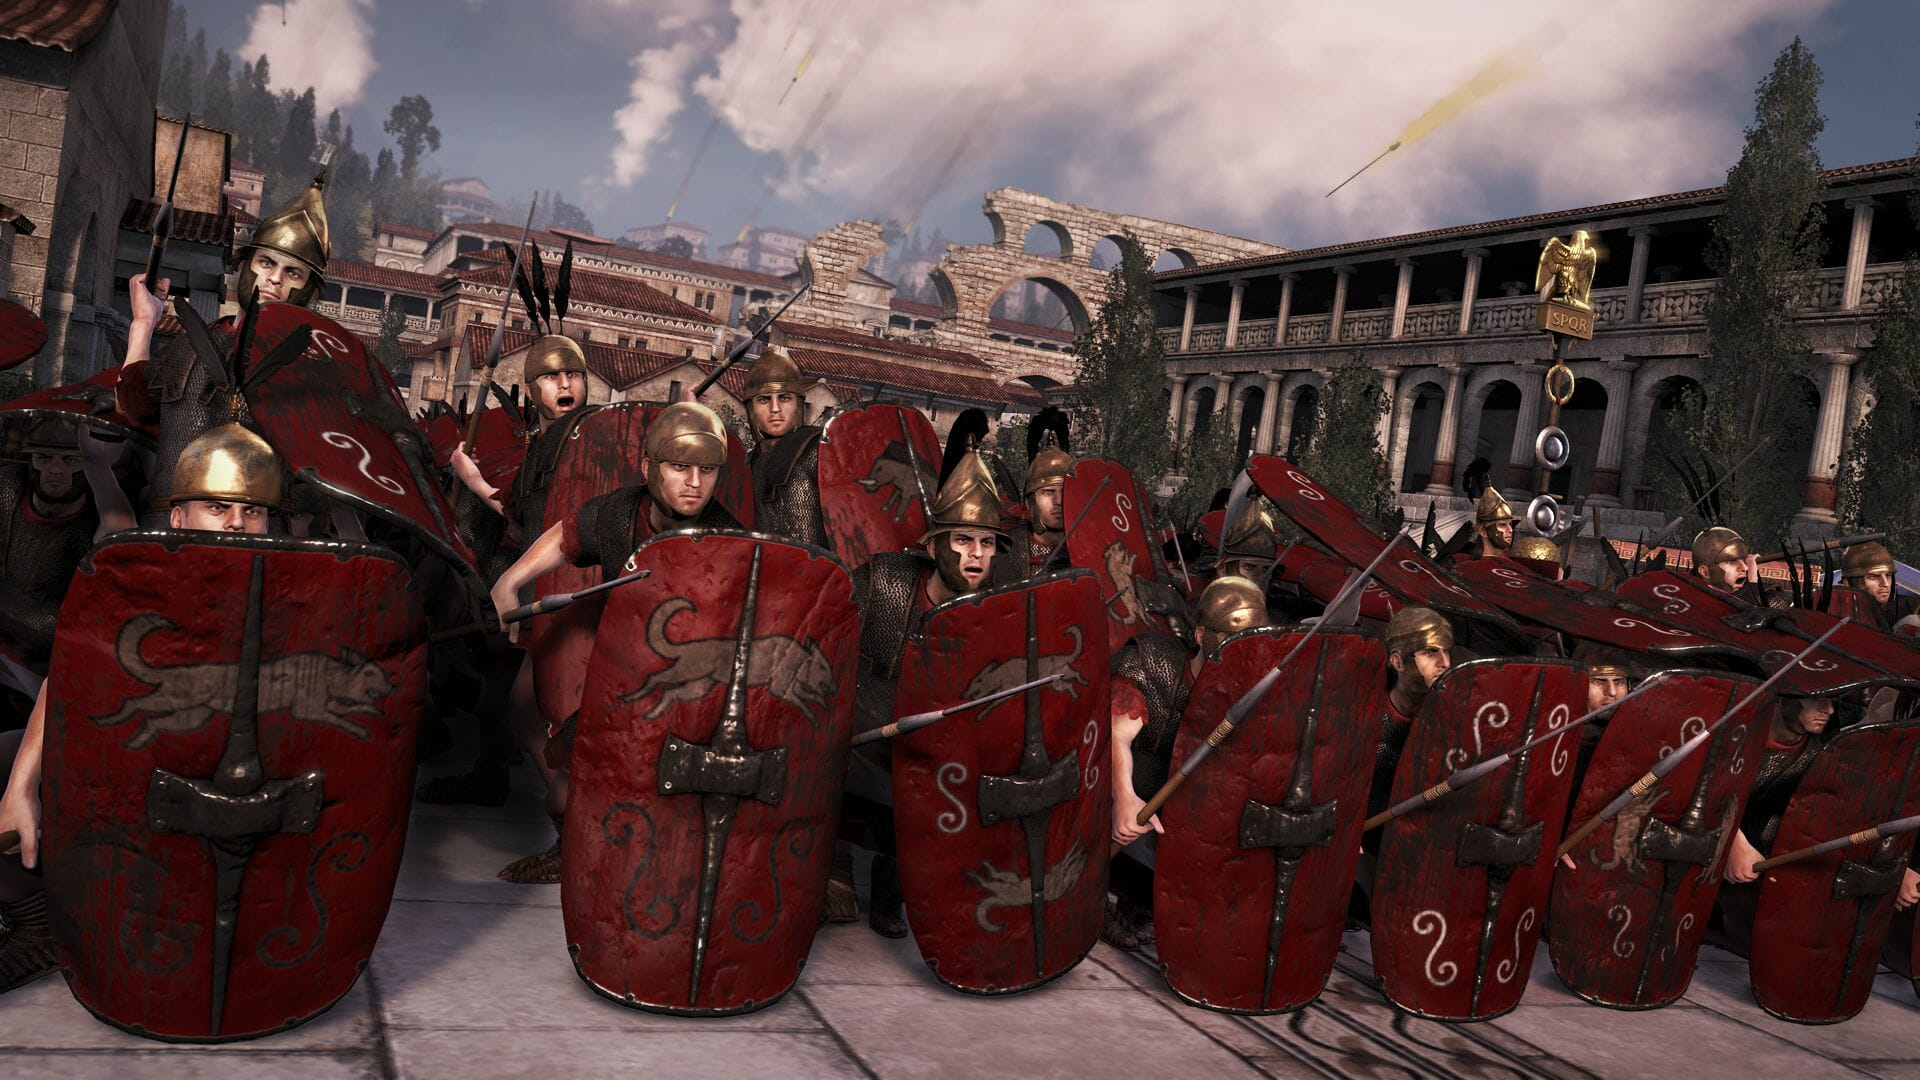 A screenshot from Total War Rome 2 showing a group of legionnaires forming a shield wall during battle